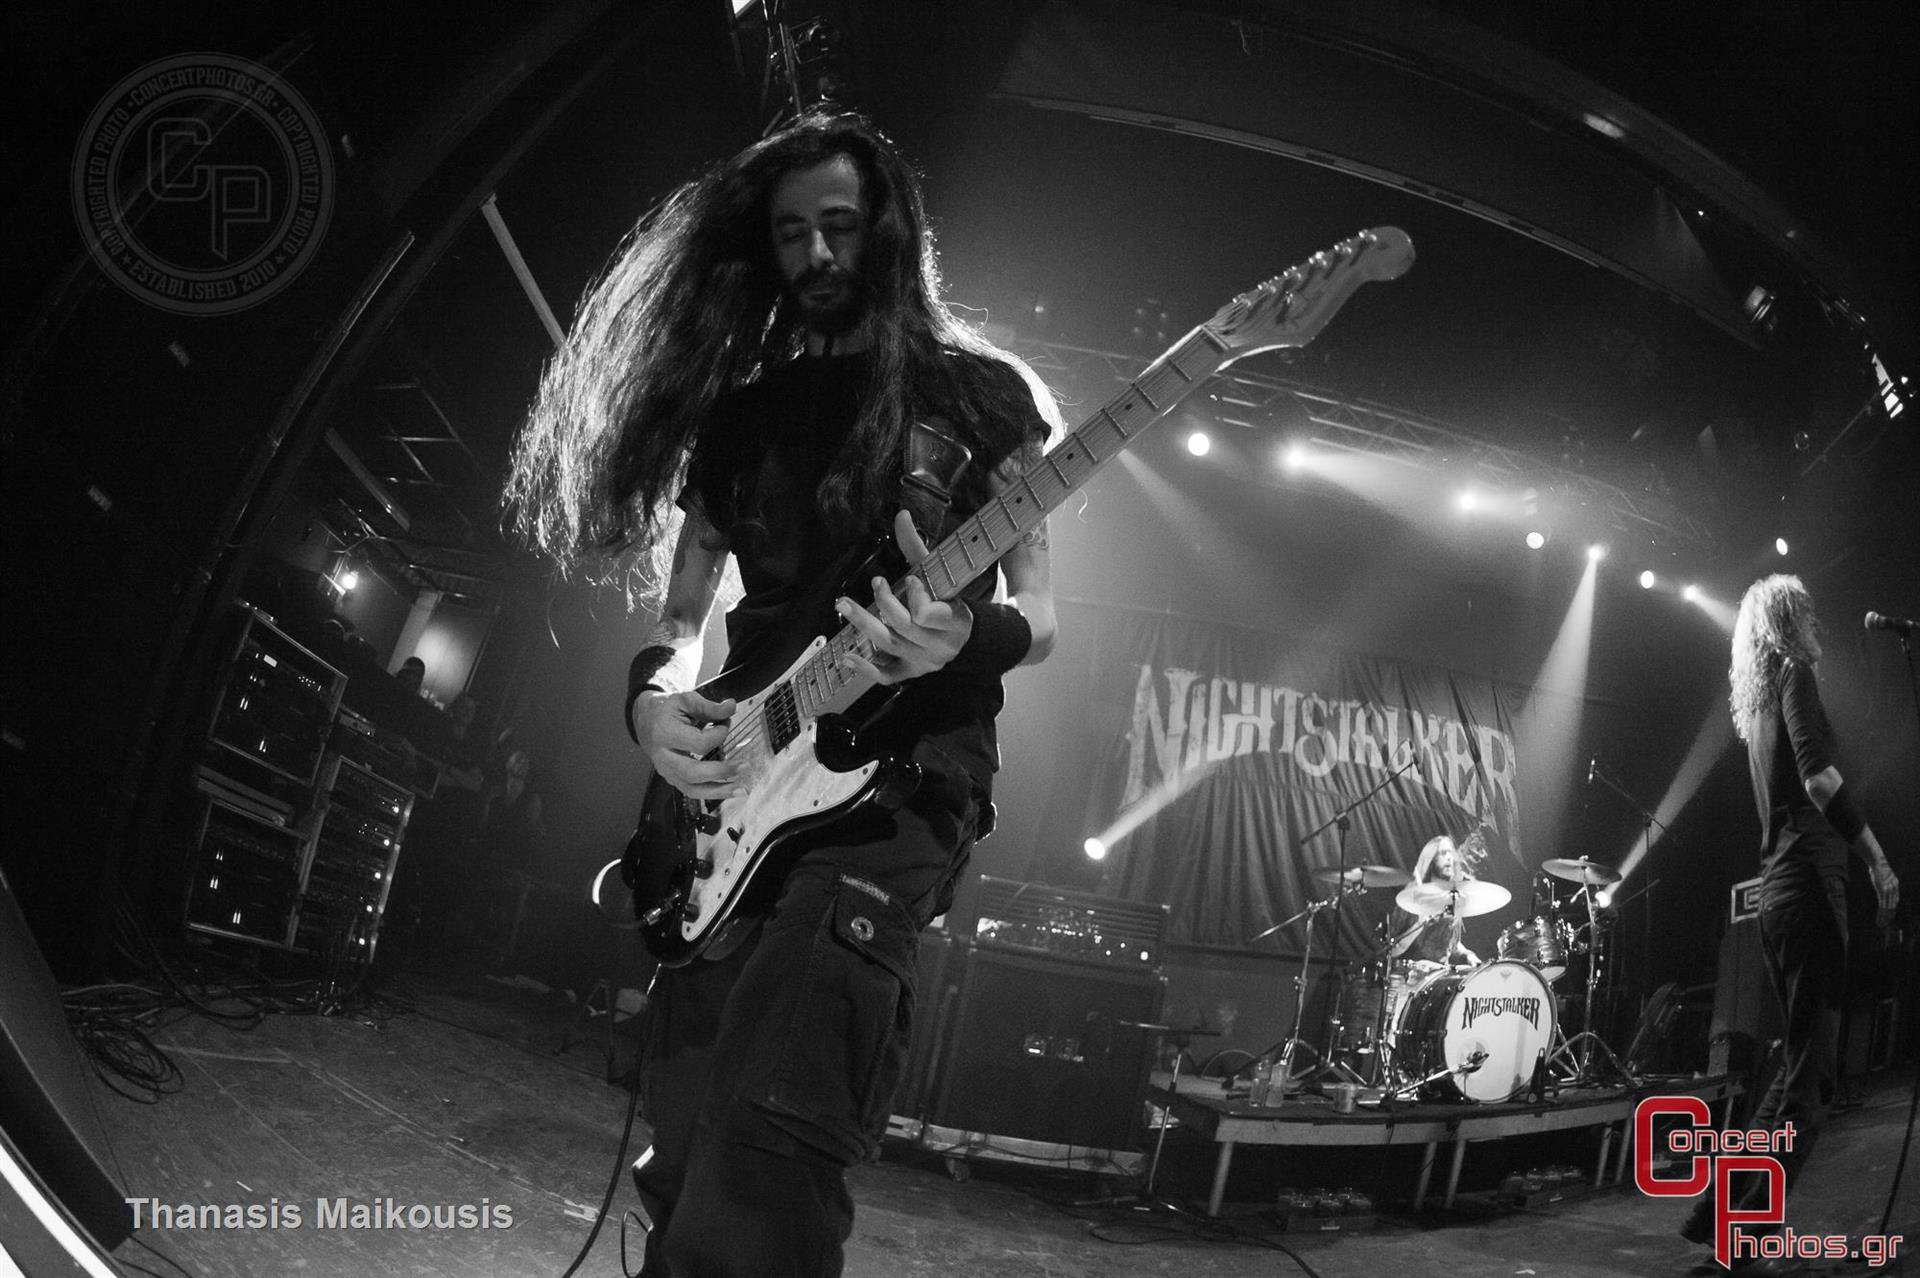 Nightstalker Three Holy Strangers-Nightstalker-Gagarin-April-2015 photographer: Thanasis Maikousis - ConcertPhotos - 20150425_2248_33